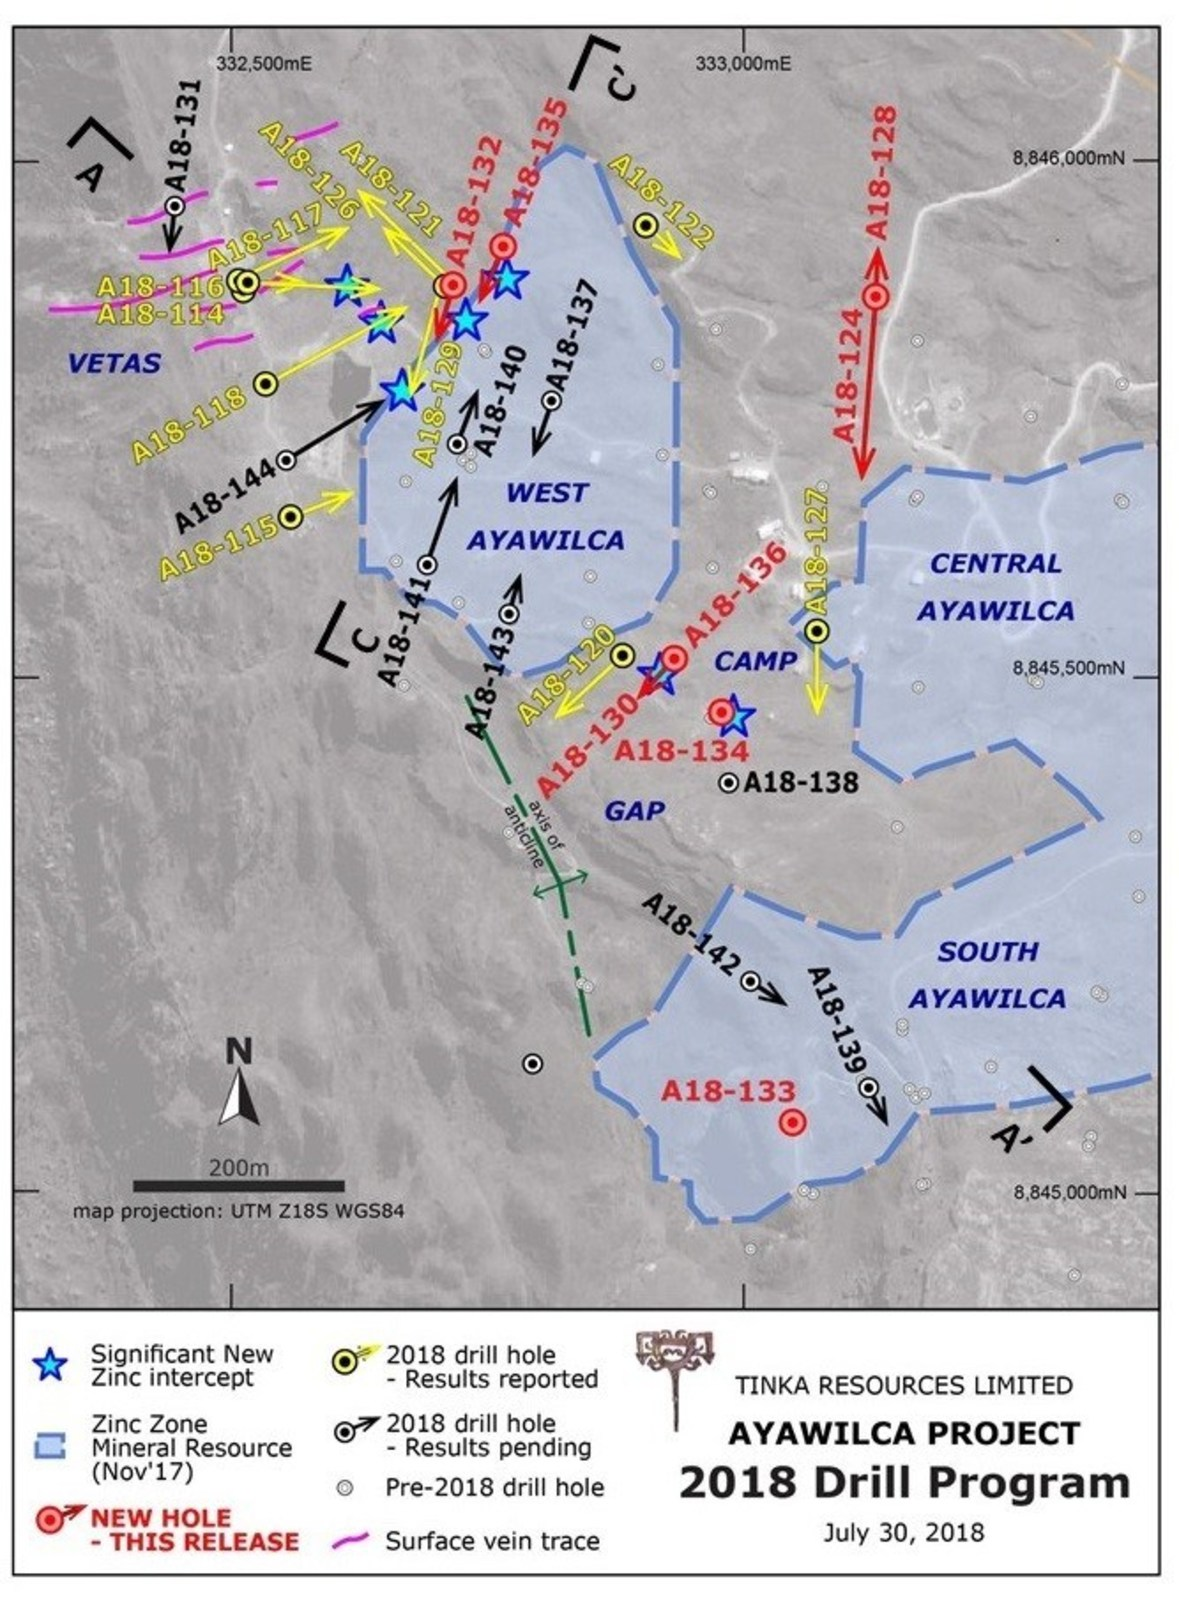 Figure 2.  West & South Ayawilca drill hole map highlighting 2018 holes & current zinc resources